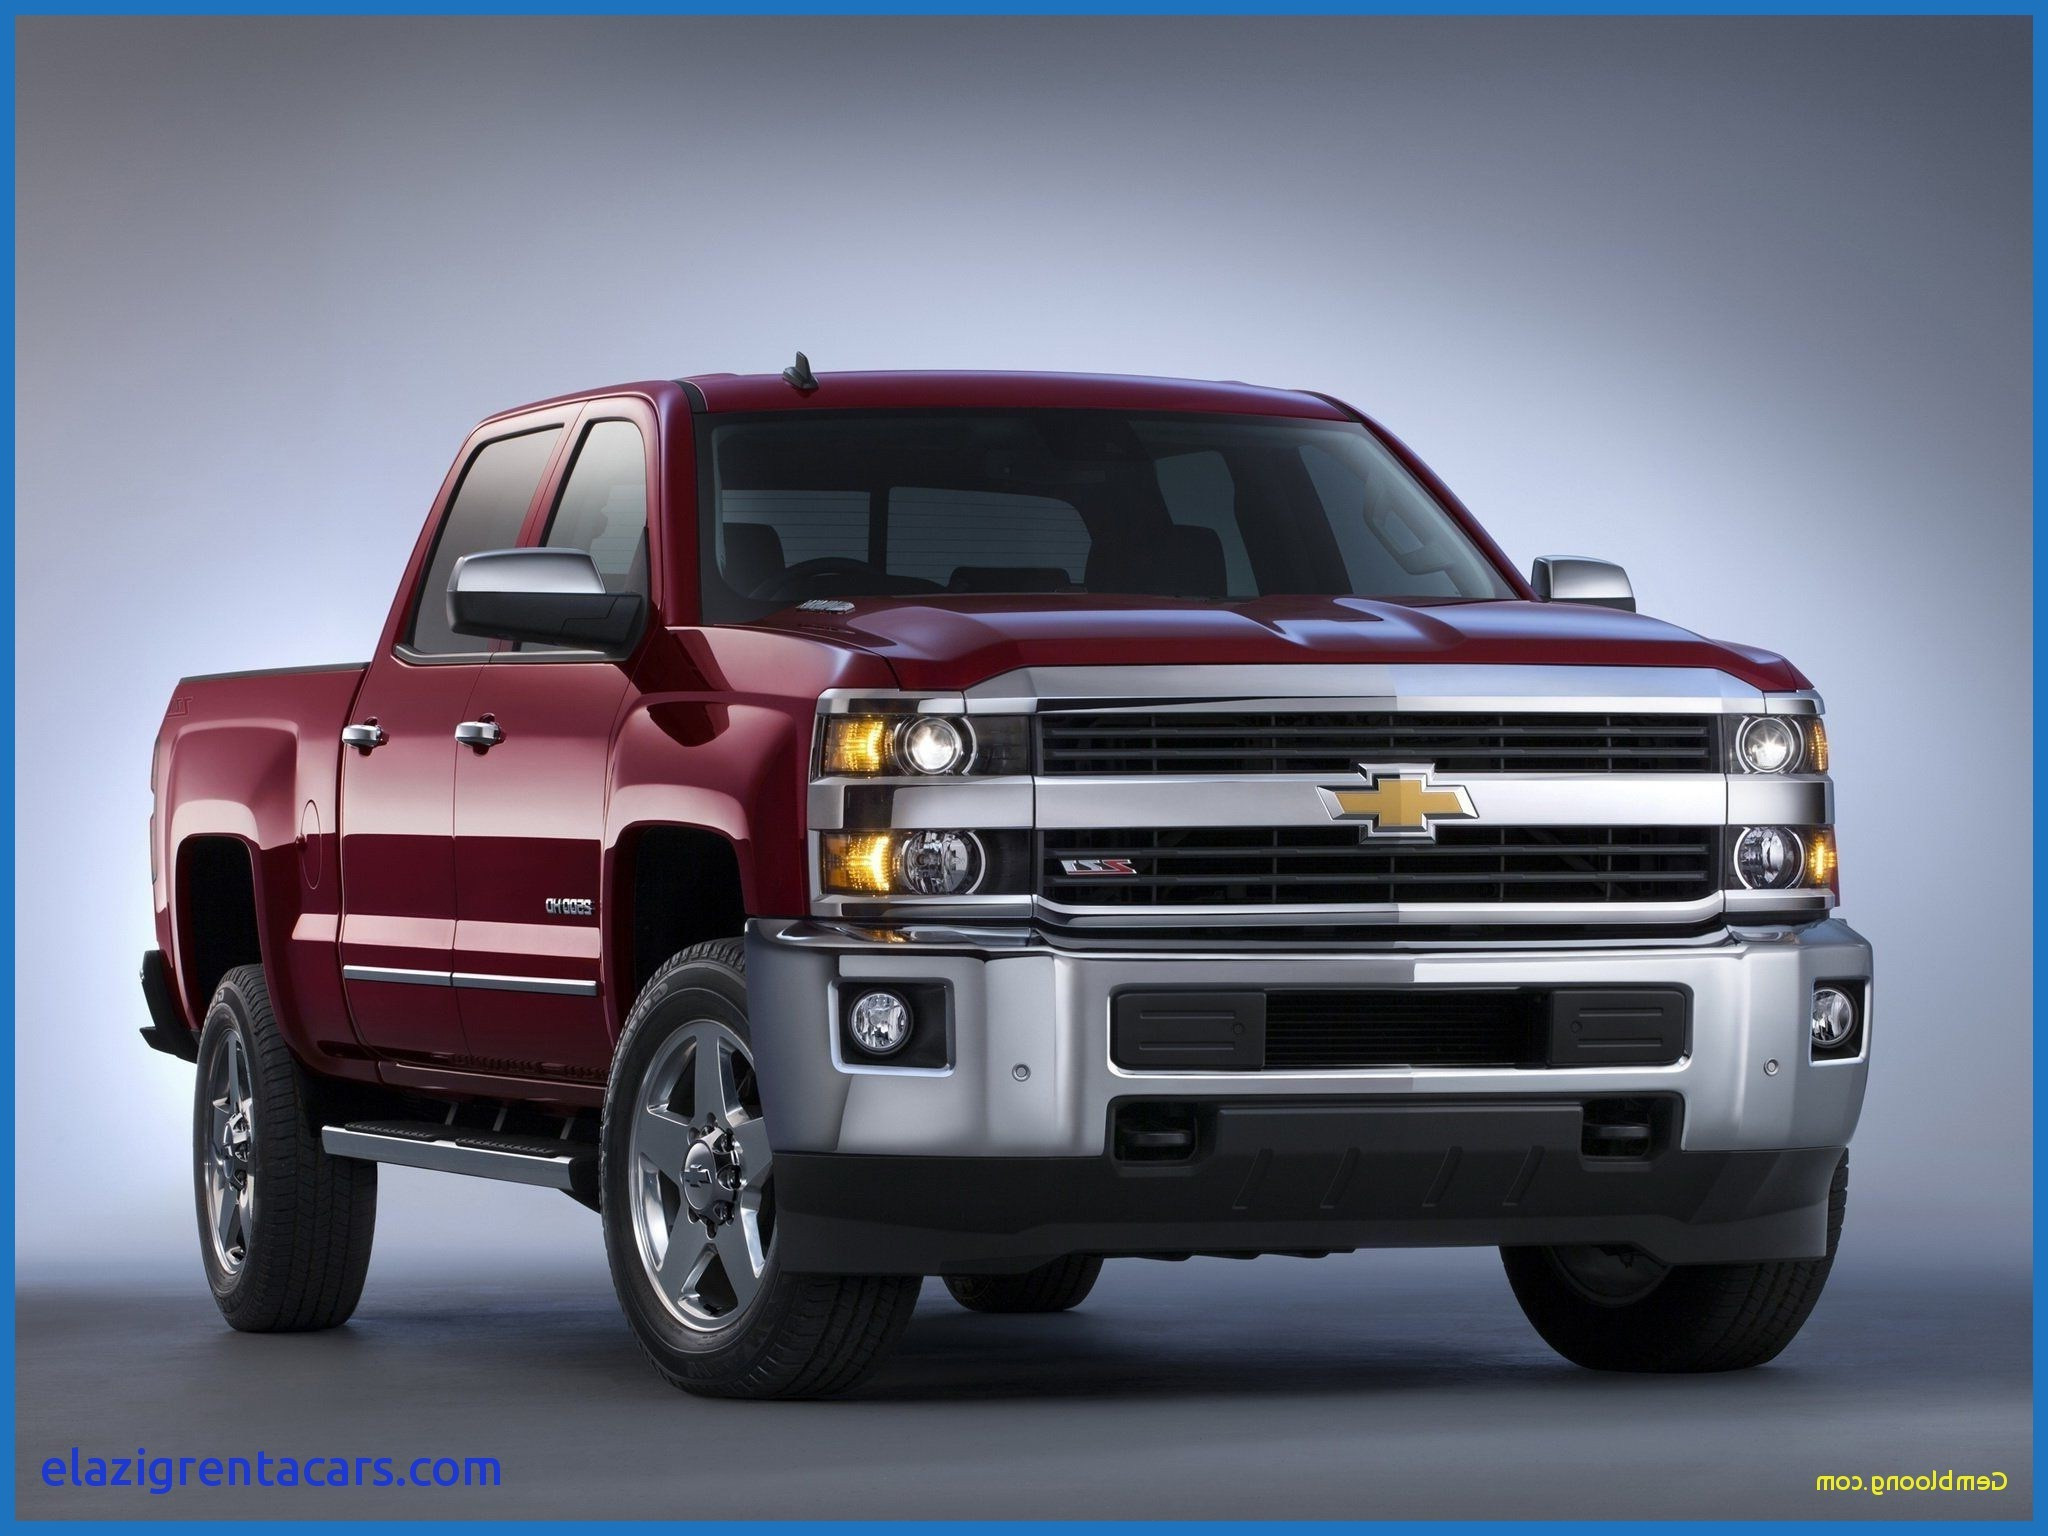 70 All New Spy Silverado 1500 Diesel Release Date